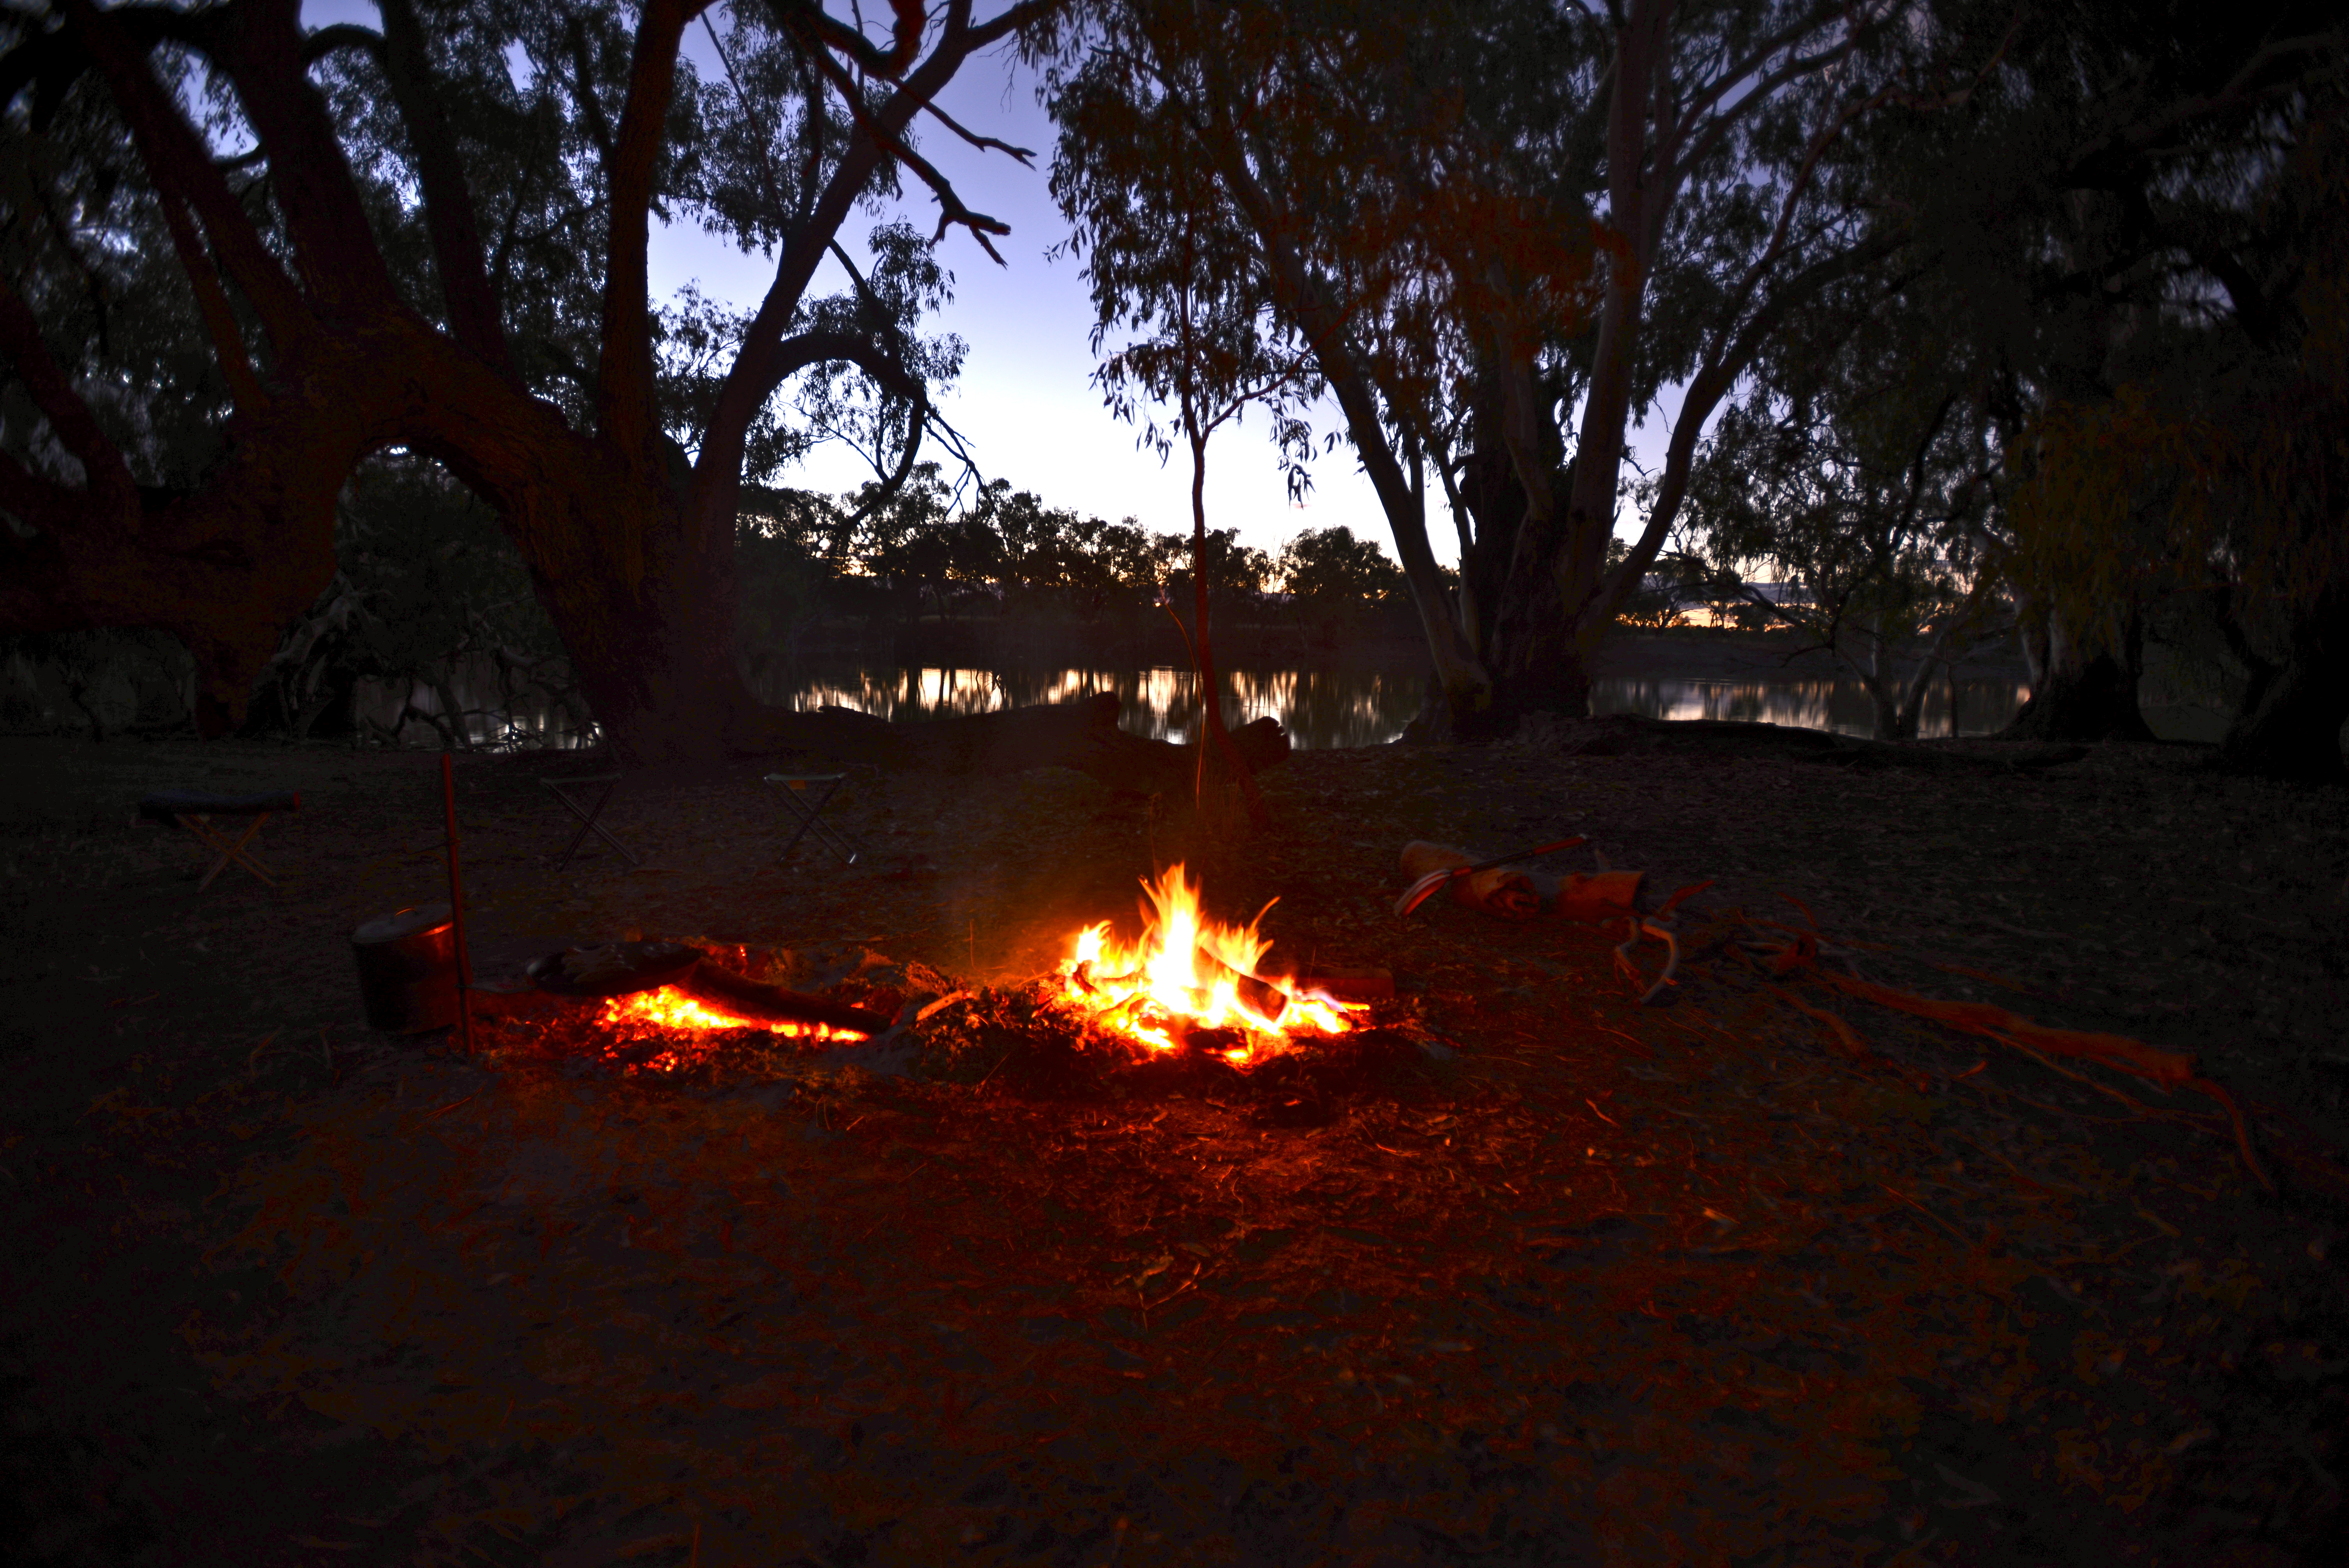 Around the fire - Trilby Station, Outback Australia